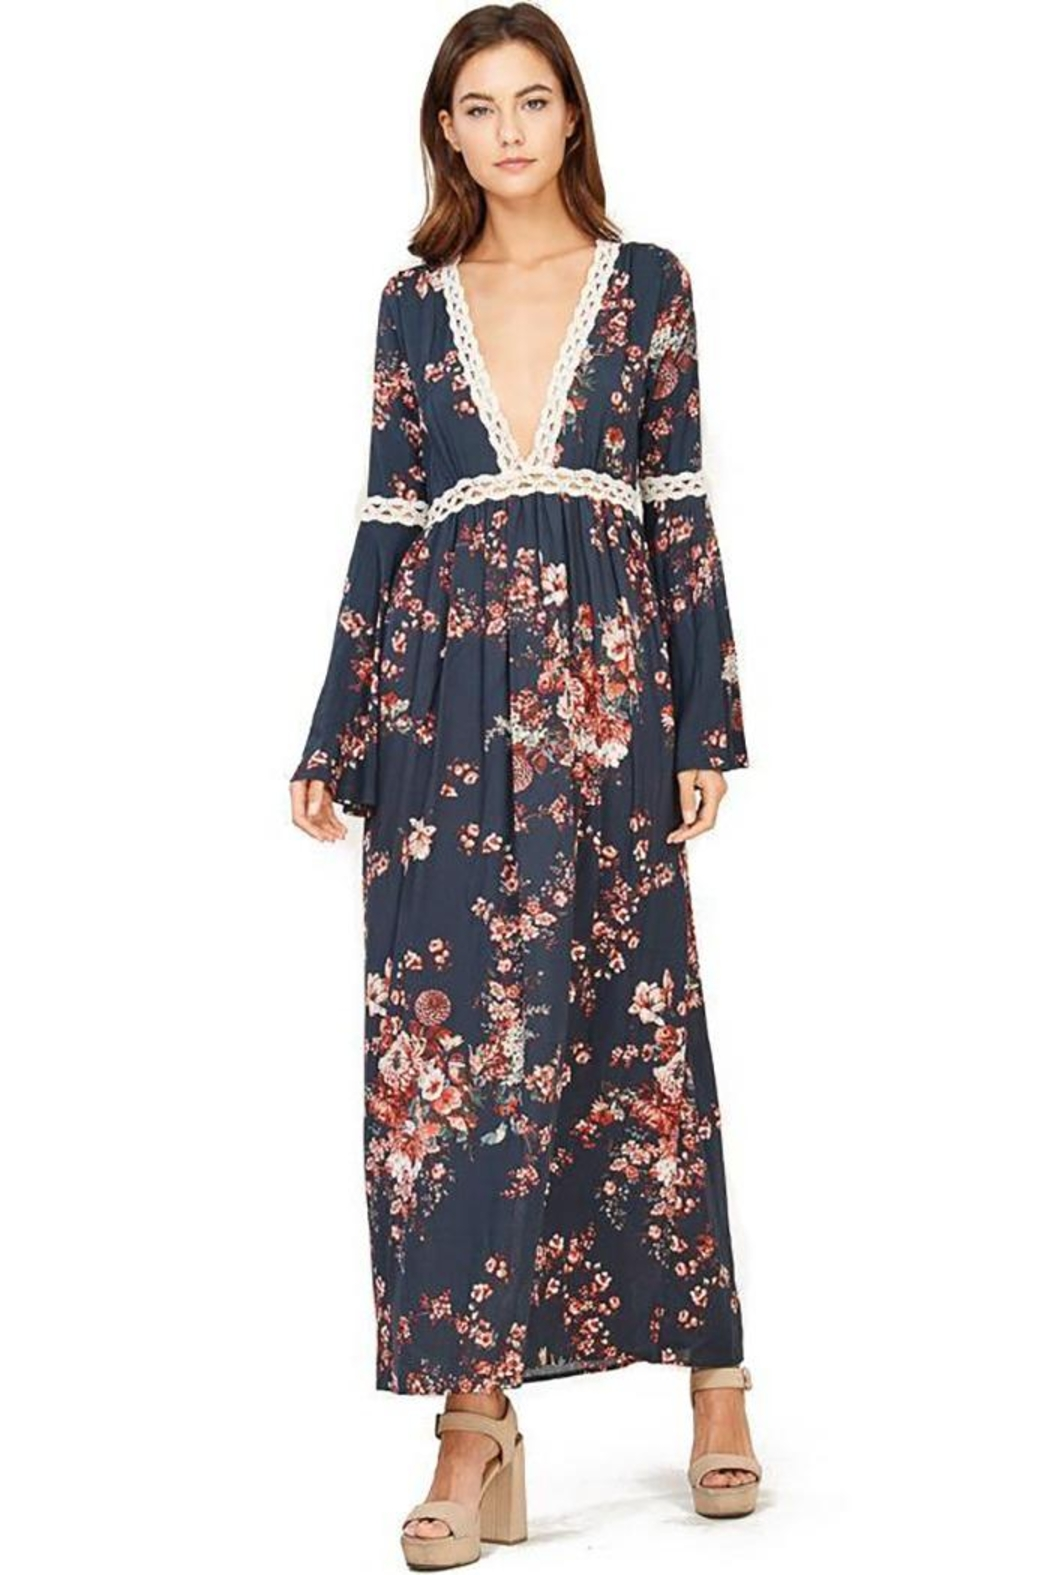 Audrey 3+1 Floral Bell Sleeve Maxi Dress - Front Cropped Image